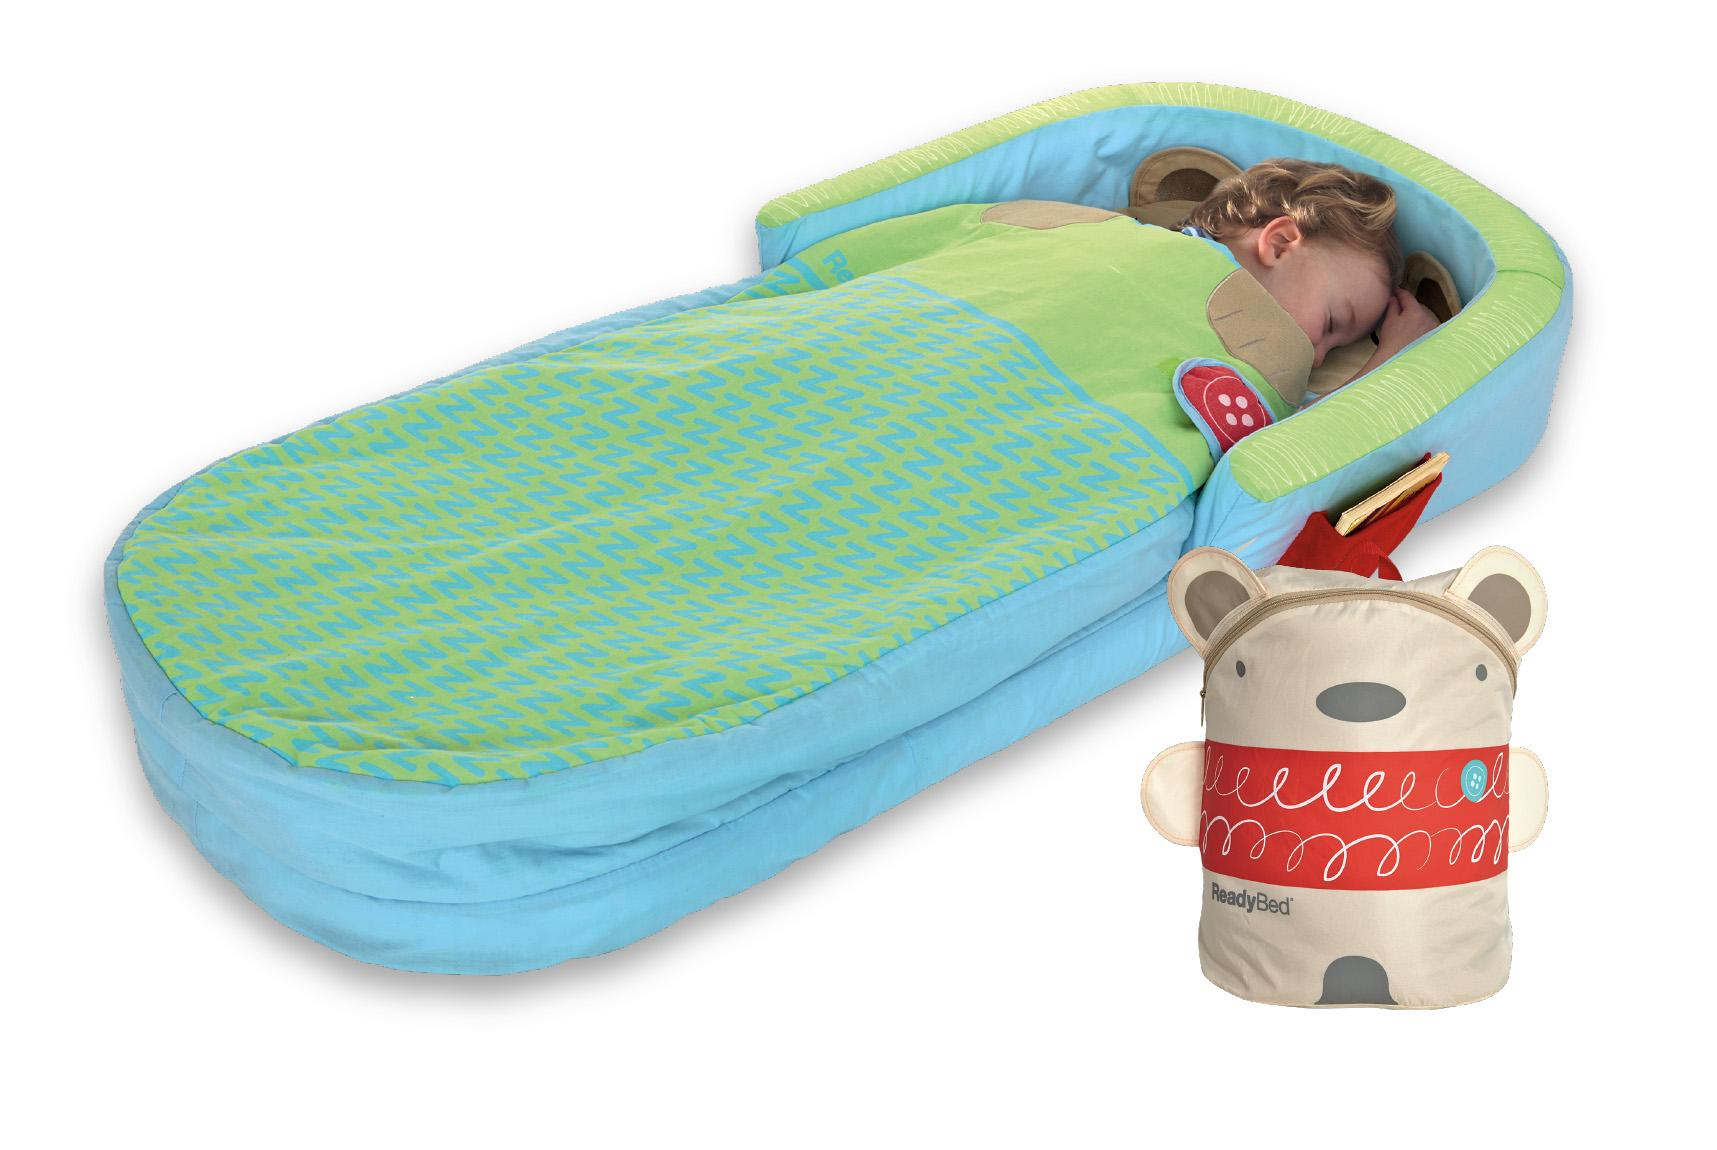 Amazon.com: Diggin Bear Hug My First Ready Bed: Toys & Games